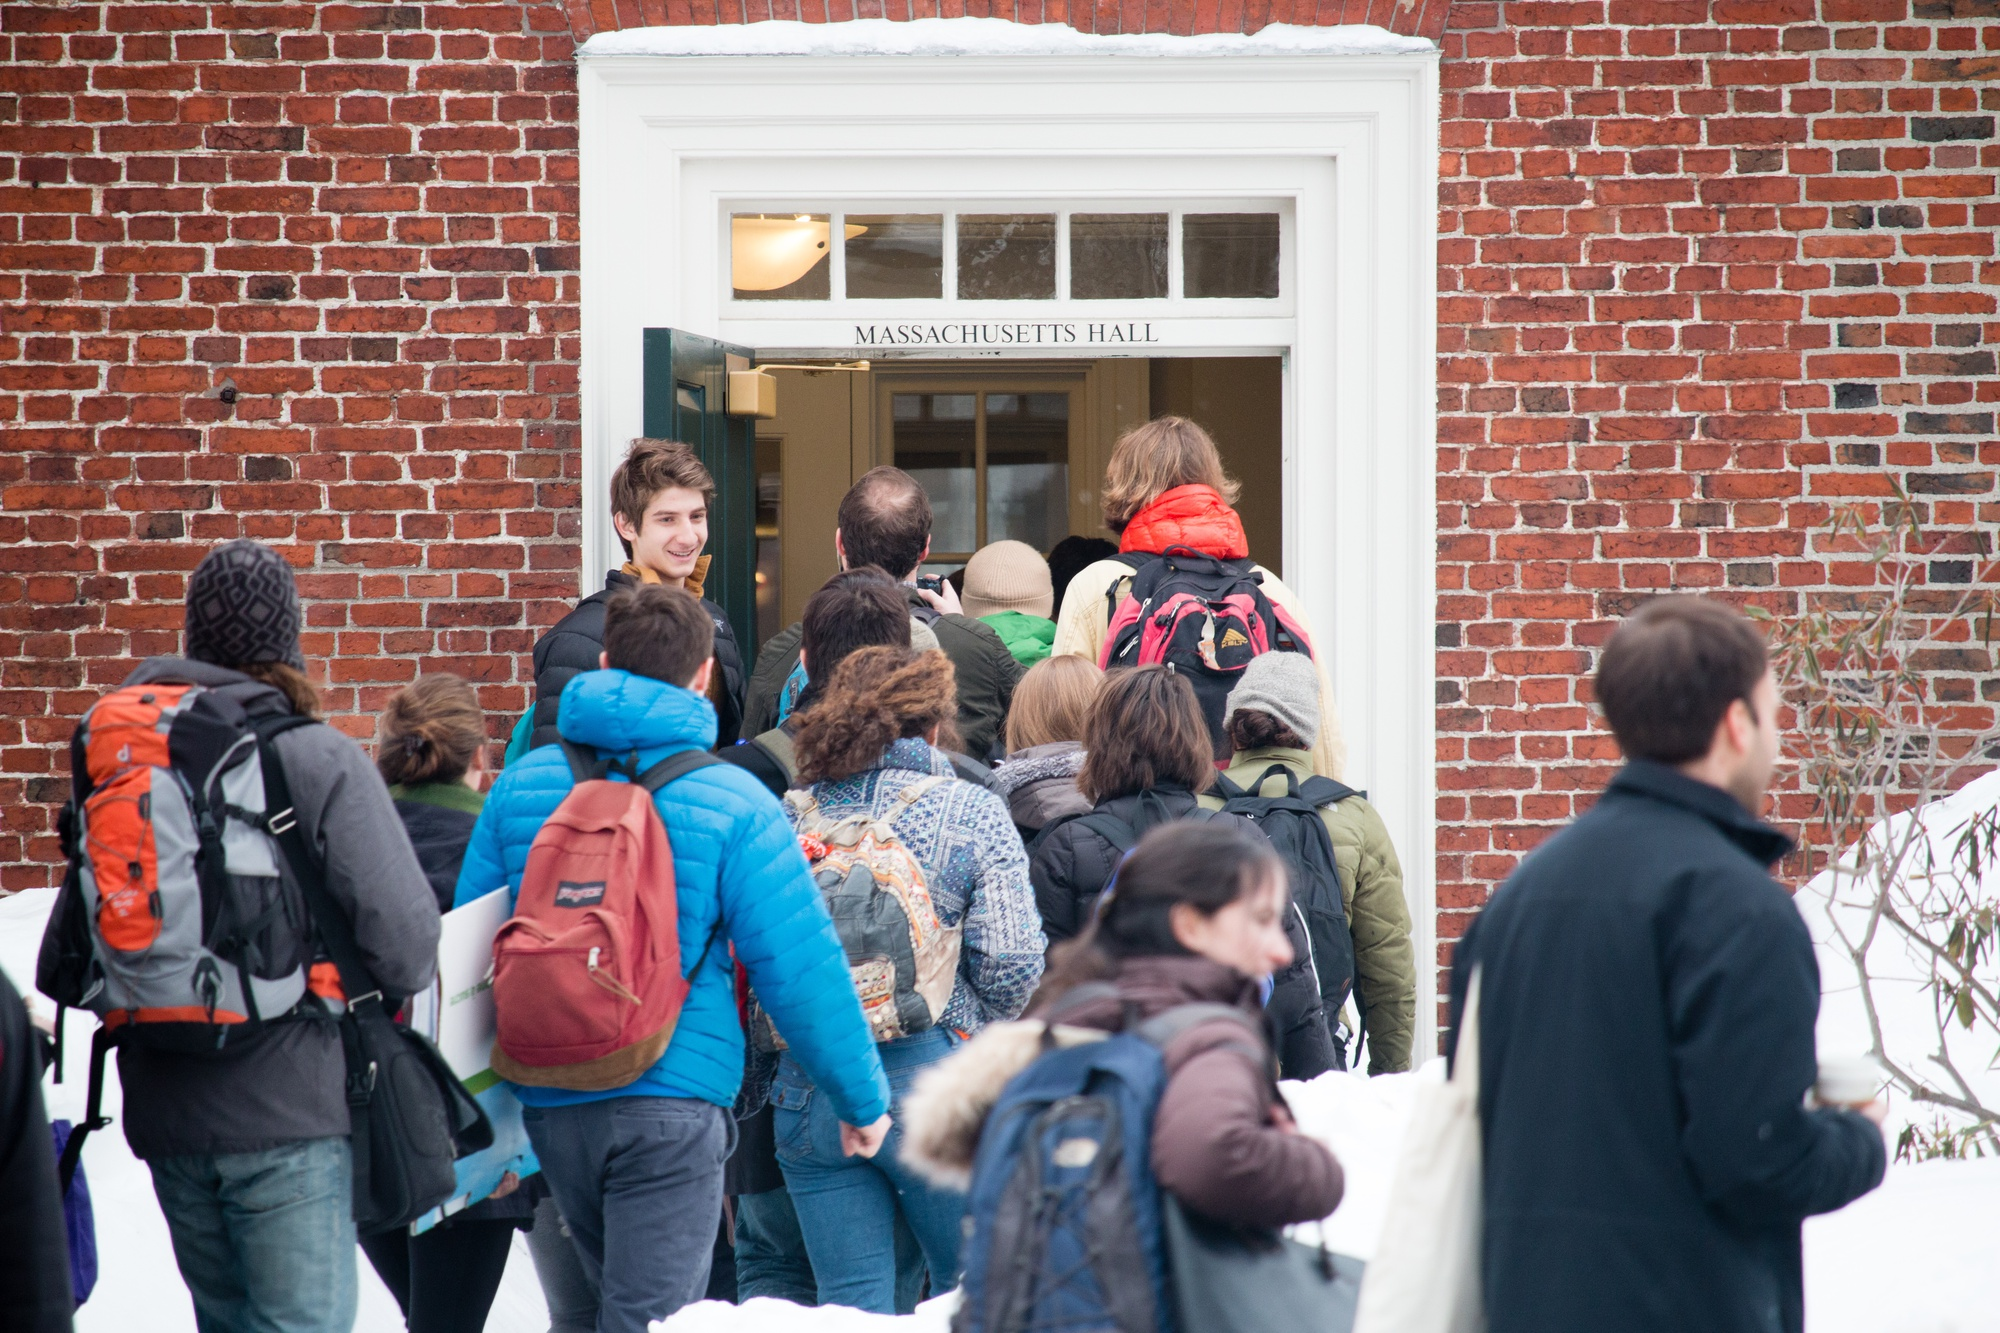 One week after the Divest Harvard protest in Massachusetts Hall, the organization partners with alumni for a week-long sit-in.